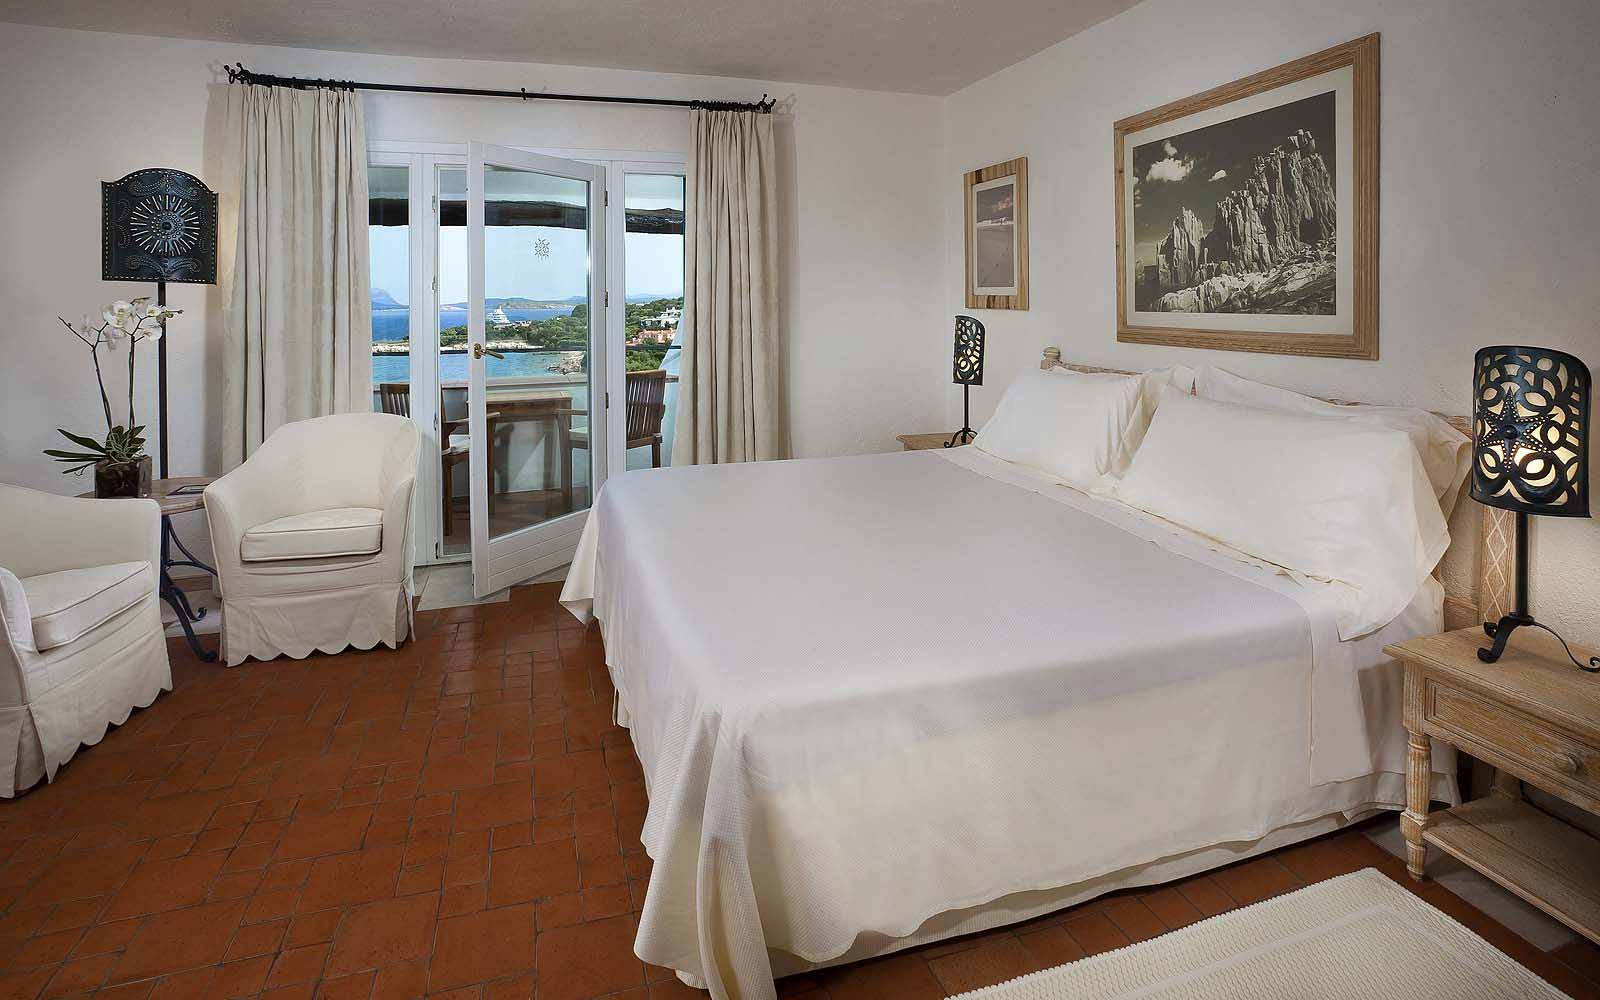 A Premium Room at the Hotel Romazzino